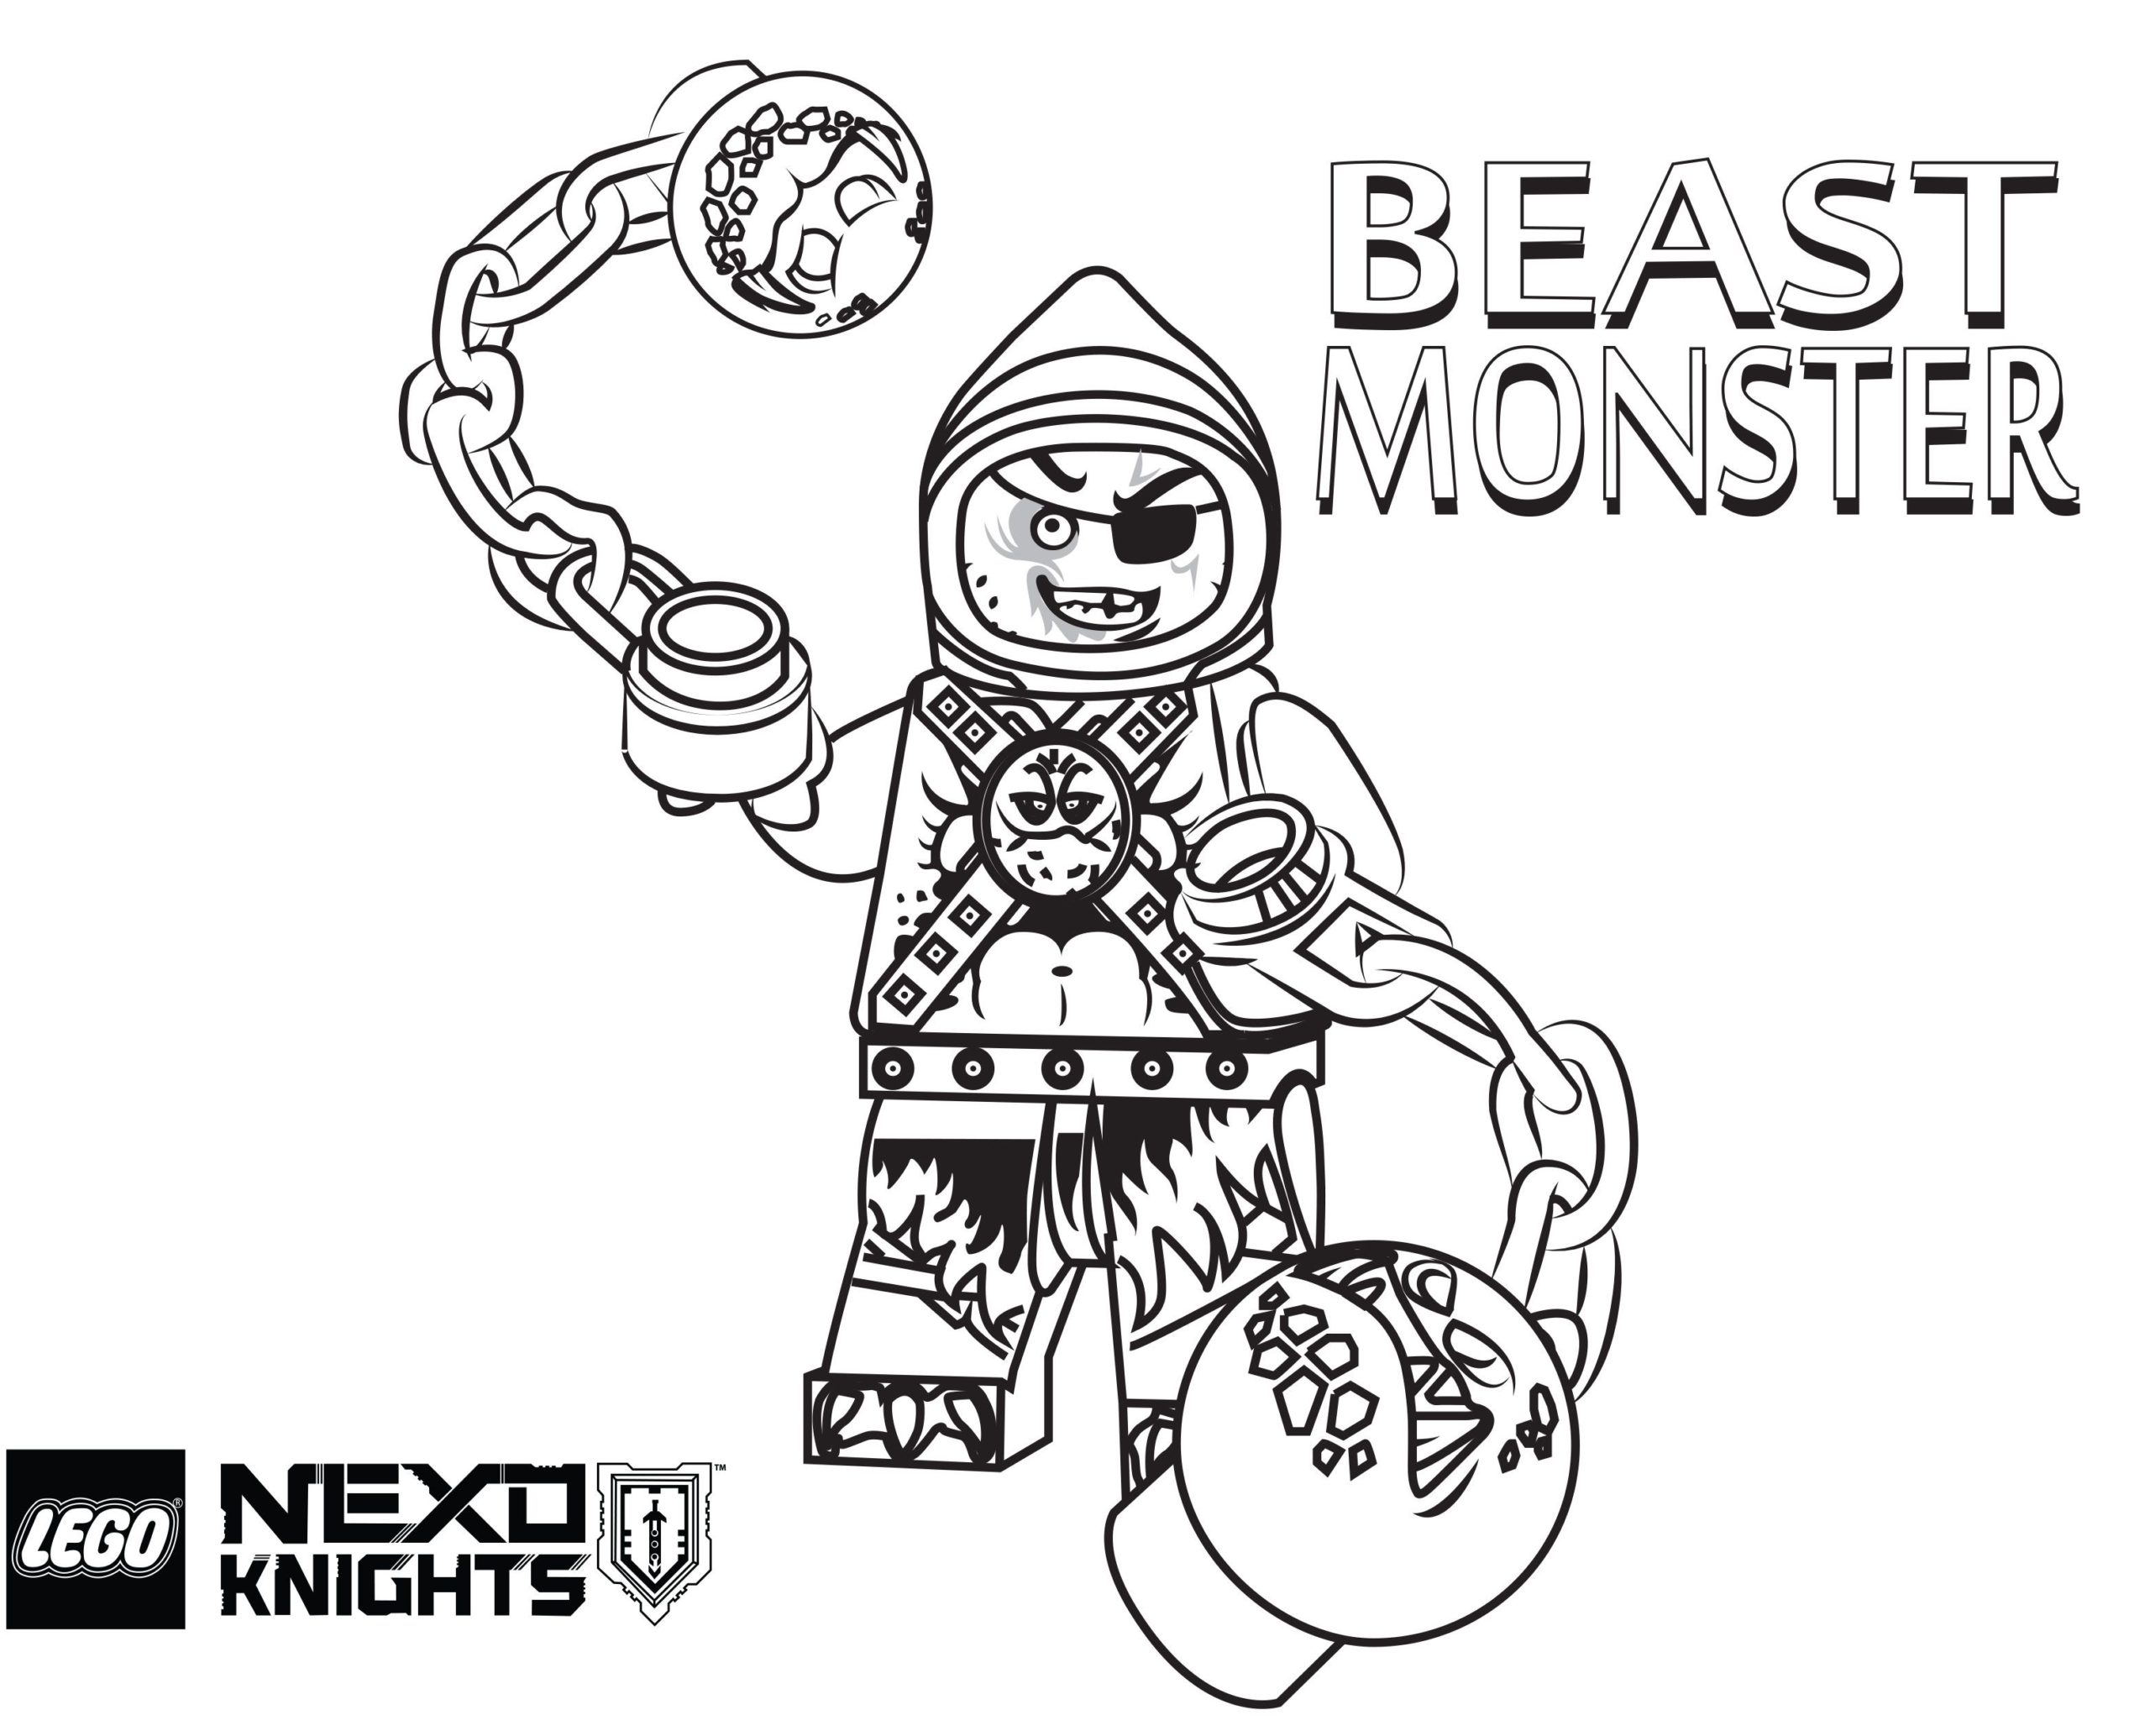 Charmant Coloriage Nexo Knights A Imprimer 44 Dans Coloriage Pages for Coloriage Nexo Knights A Imprimer